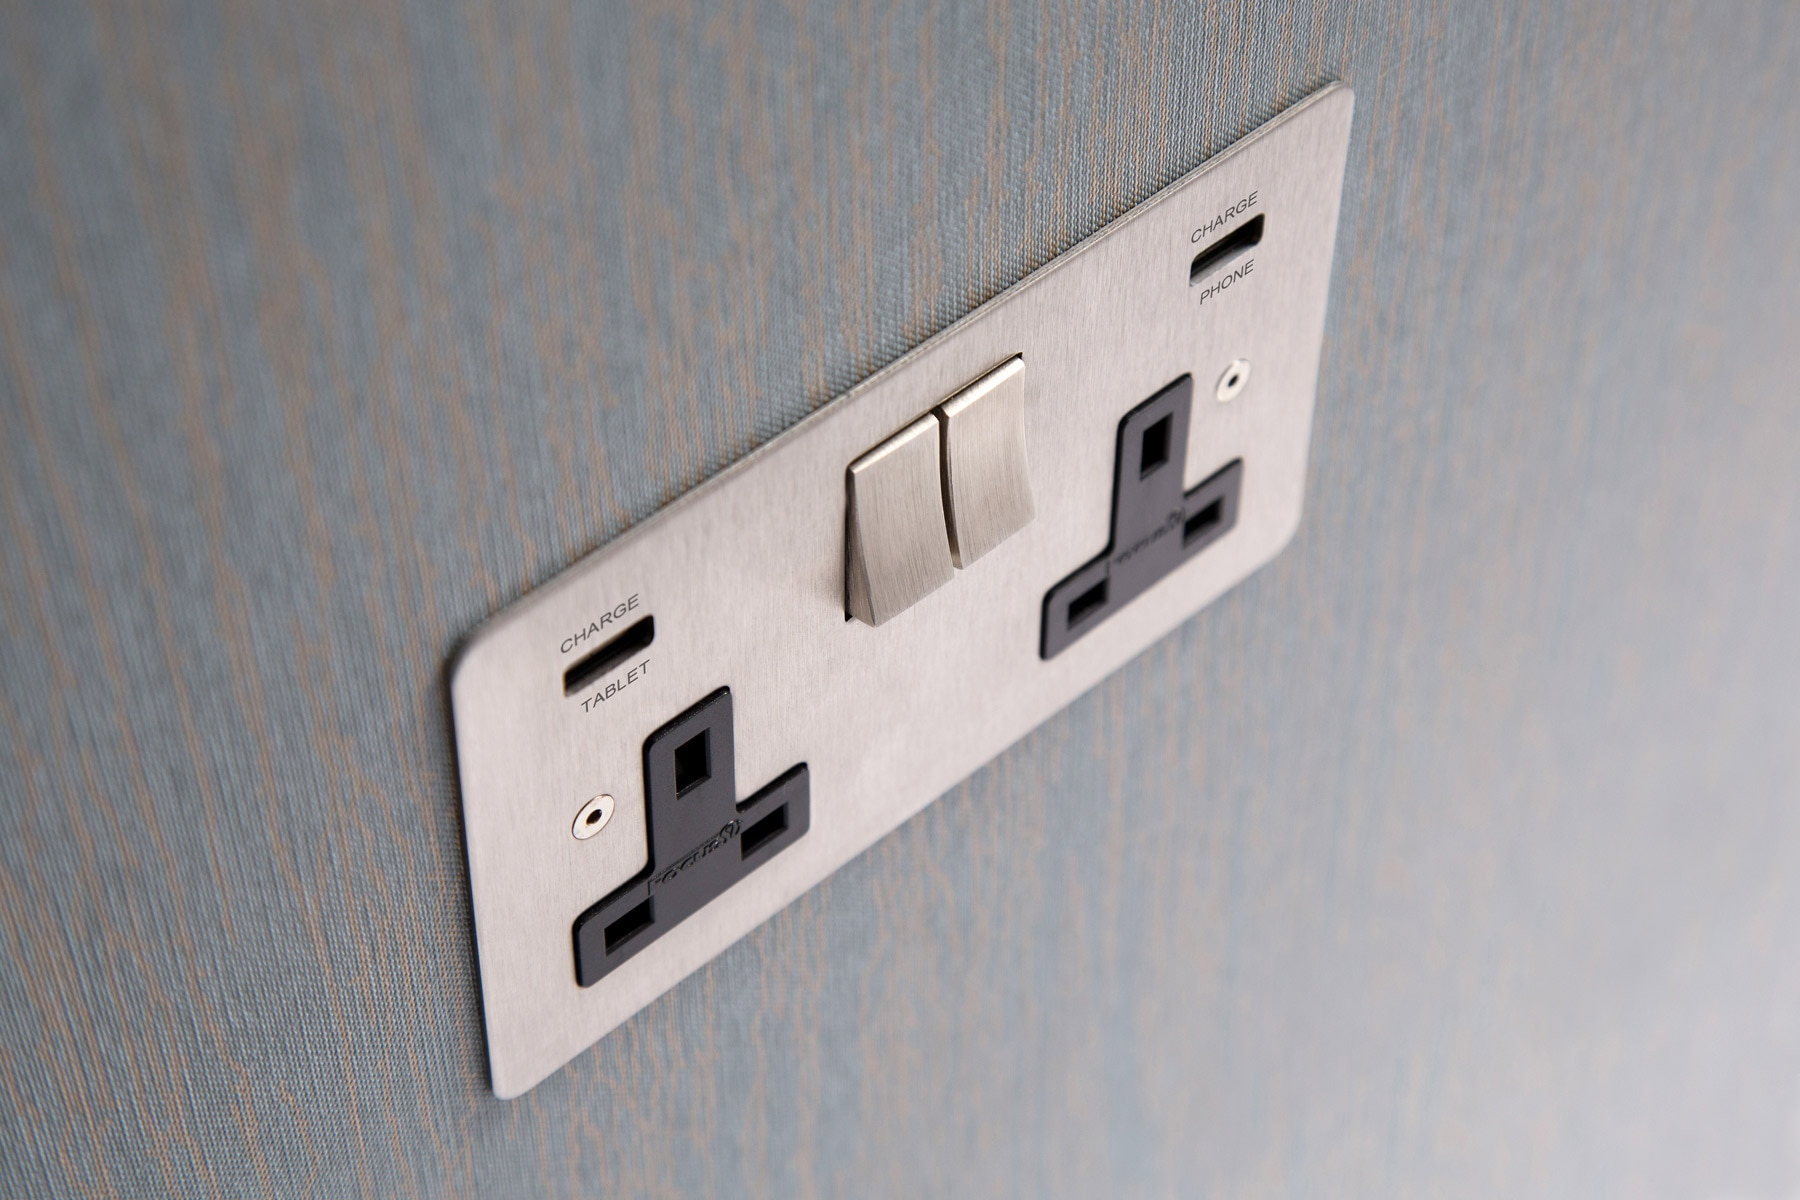 Awesome Electrical Socket Manufacturers Image Collection - Wiring ...